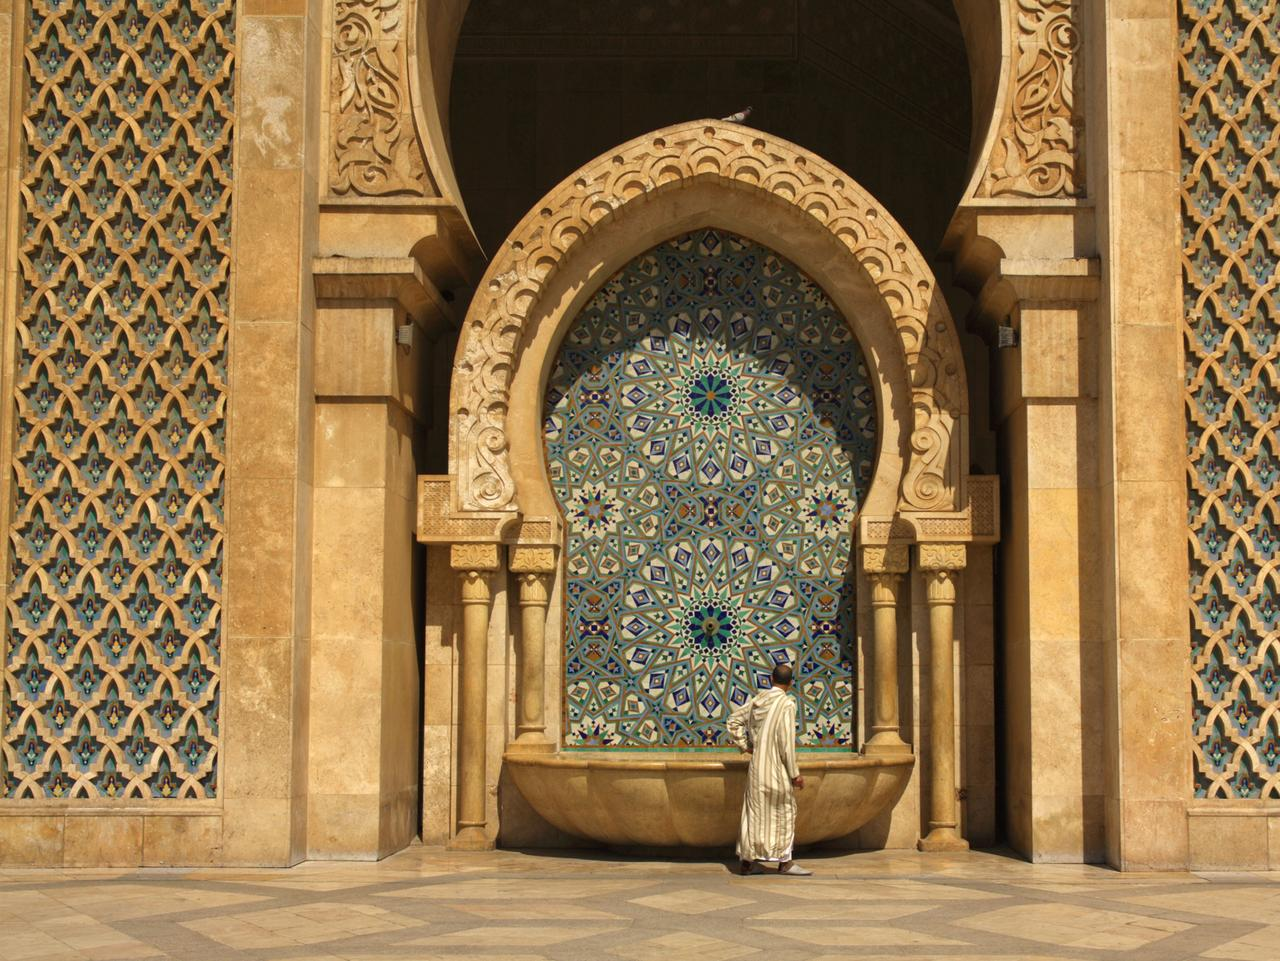 One of the several ablution fountains attached to the outer wall of the Hassan II Mosque.